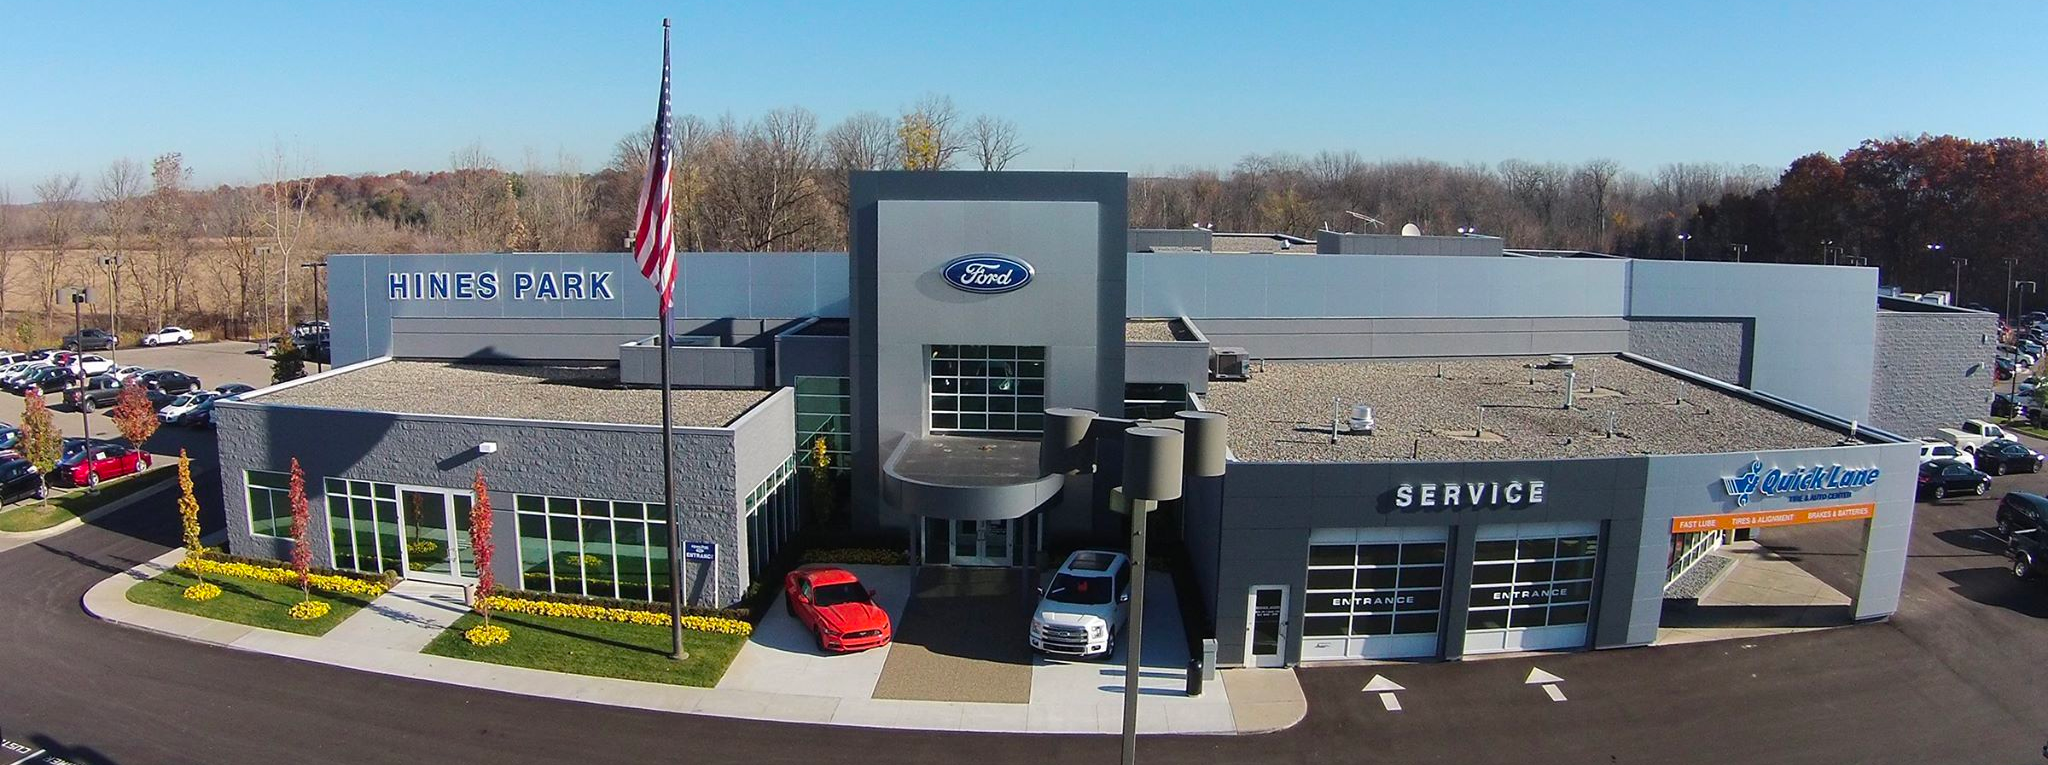 Hines Park Ford in New Hudson, MI